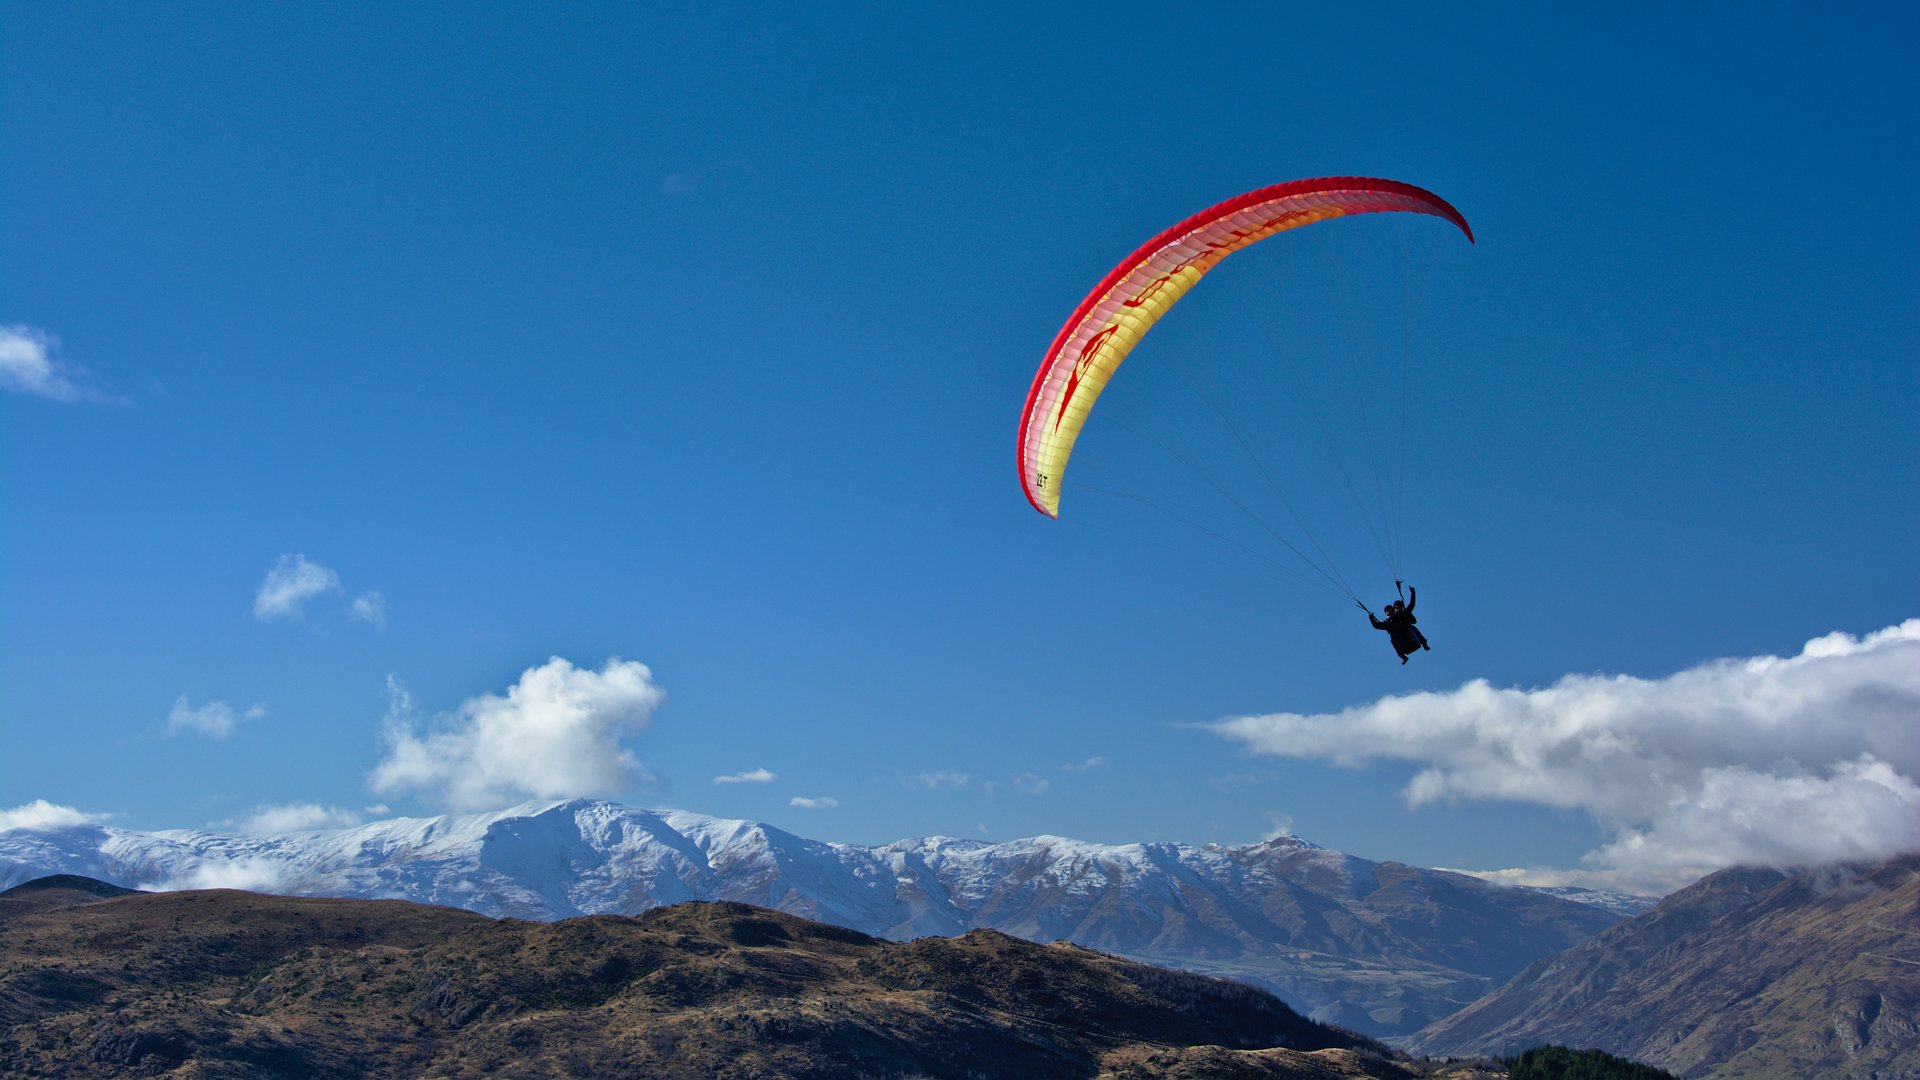 Paragliding in New Zealand 2020 - Best Time